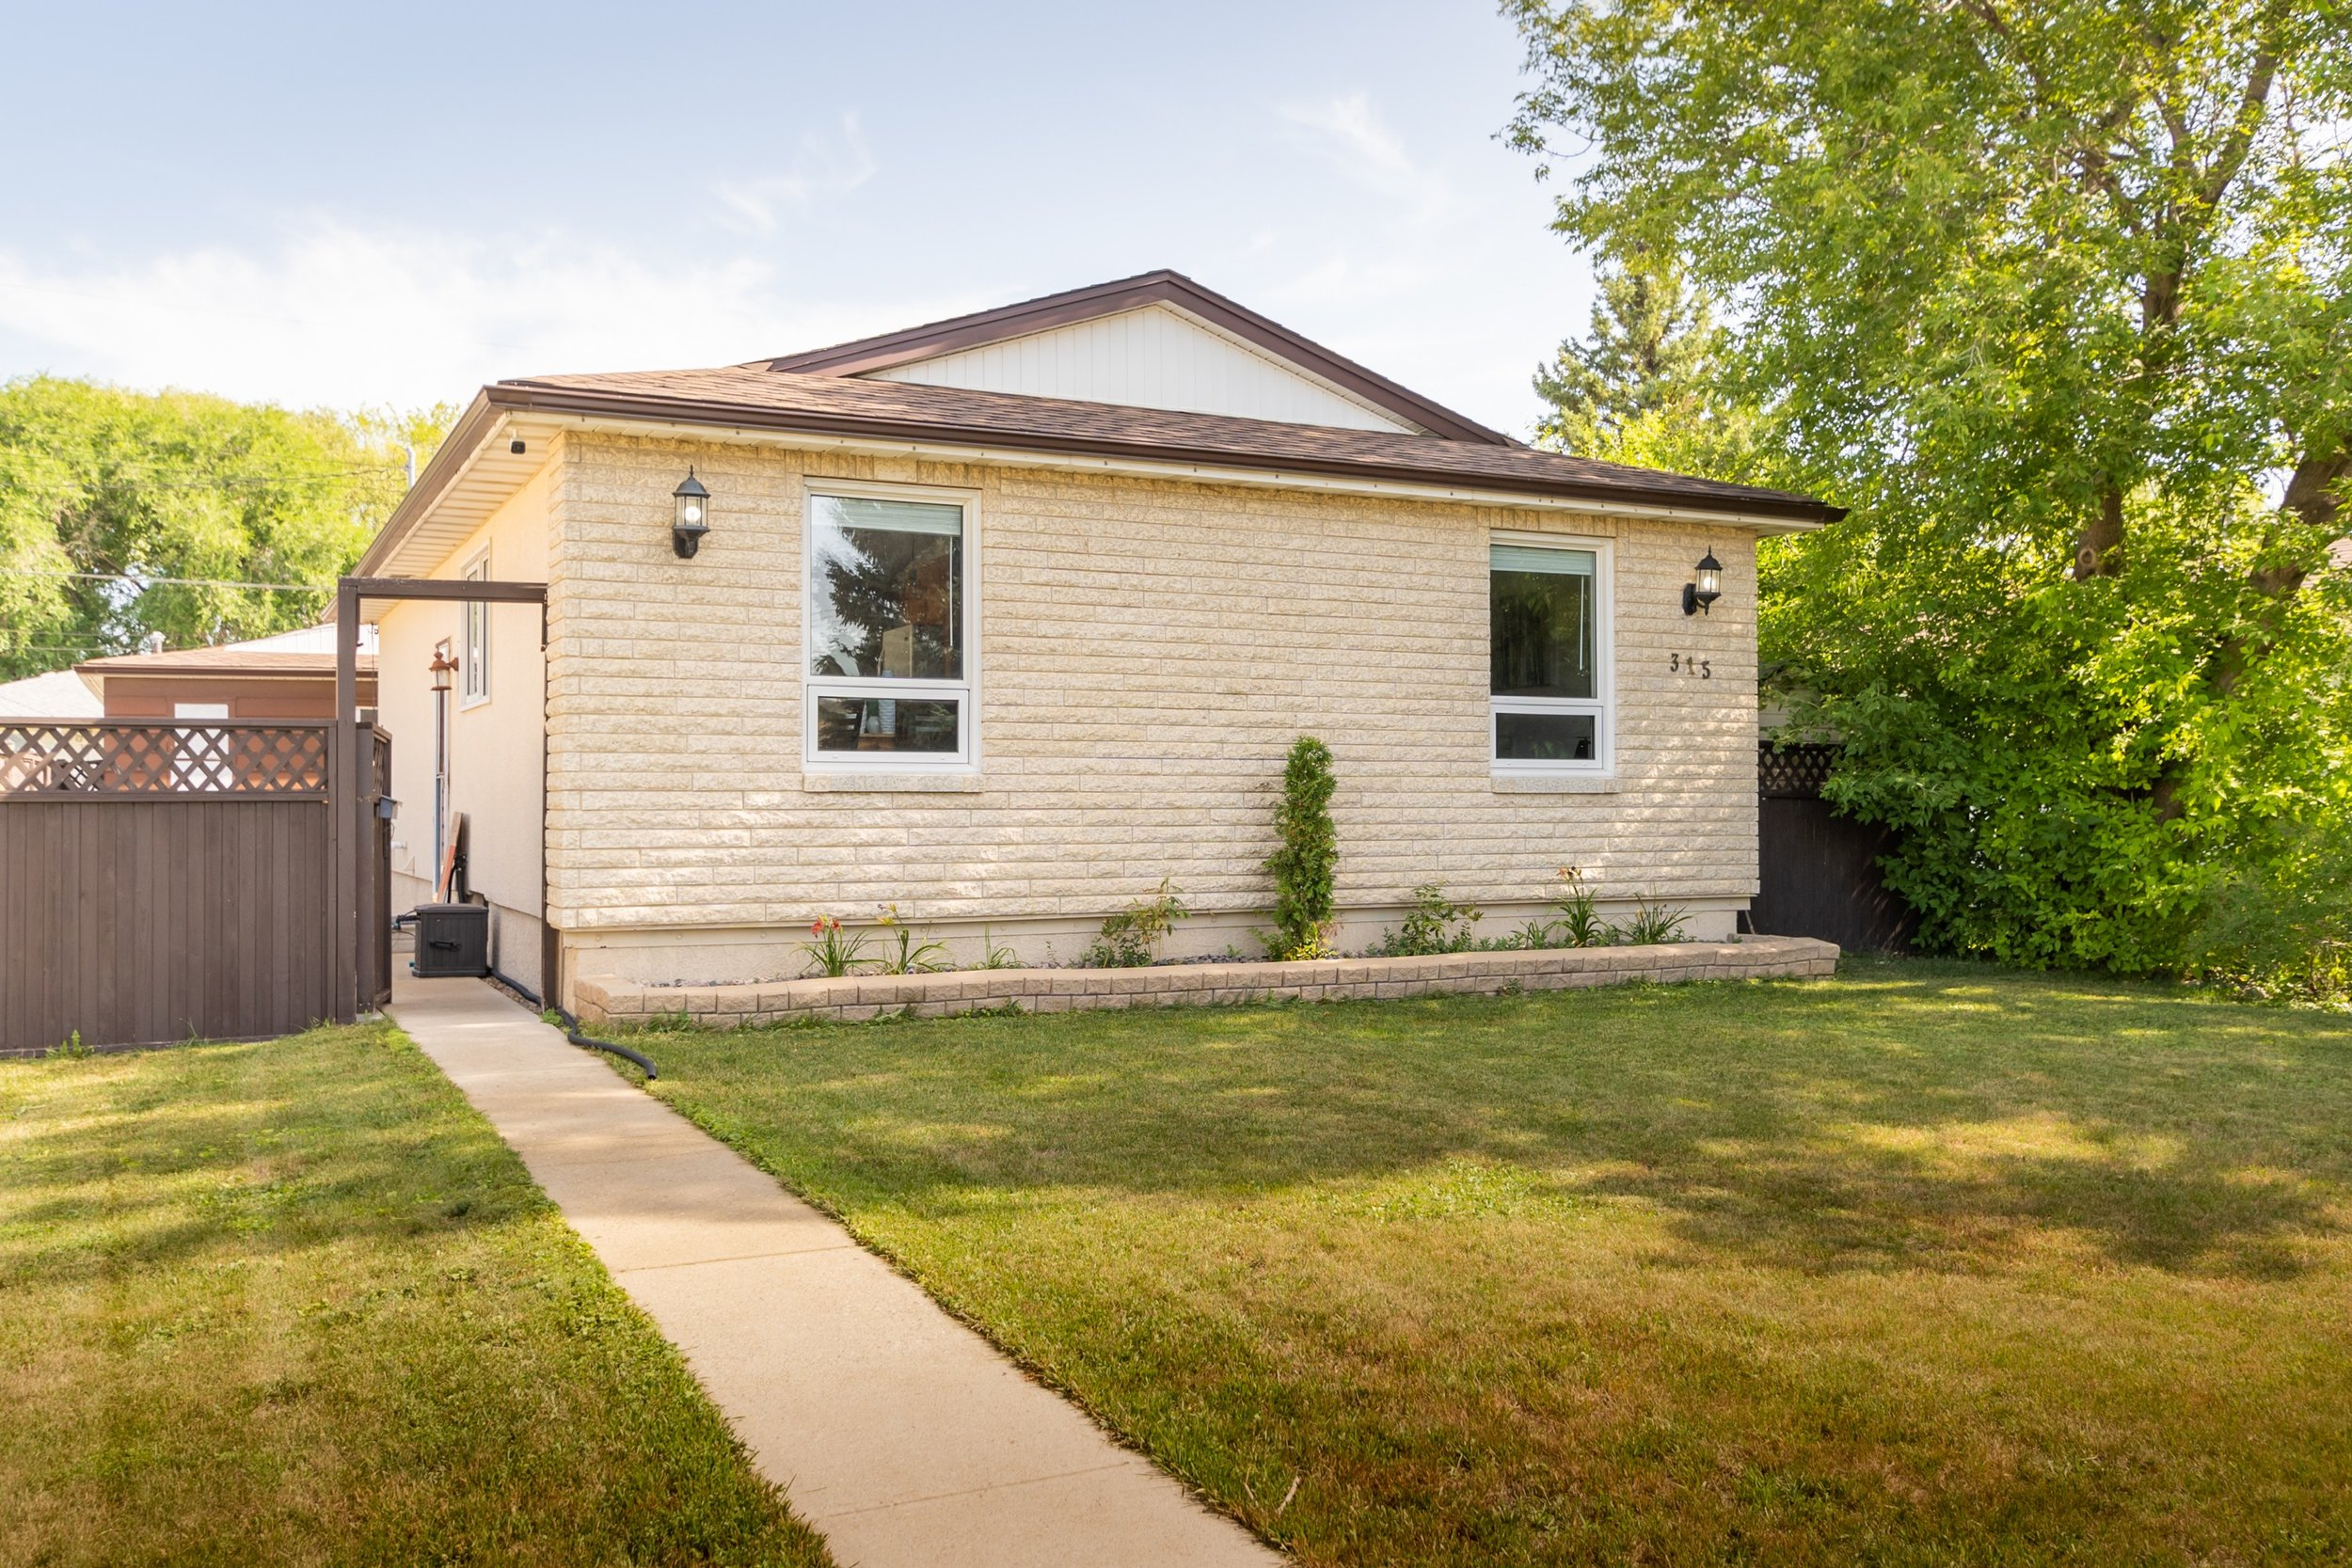 315-newton-ave-for-sale-bobby-wall-winnipeg-realtor